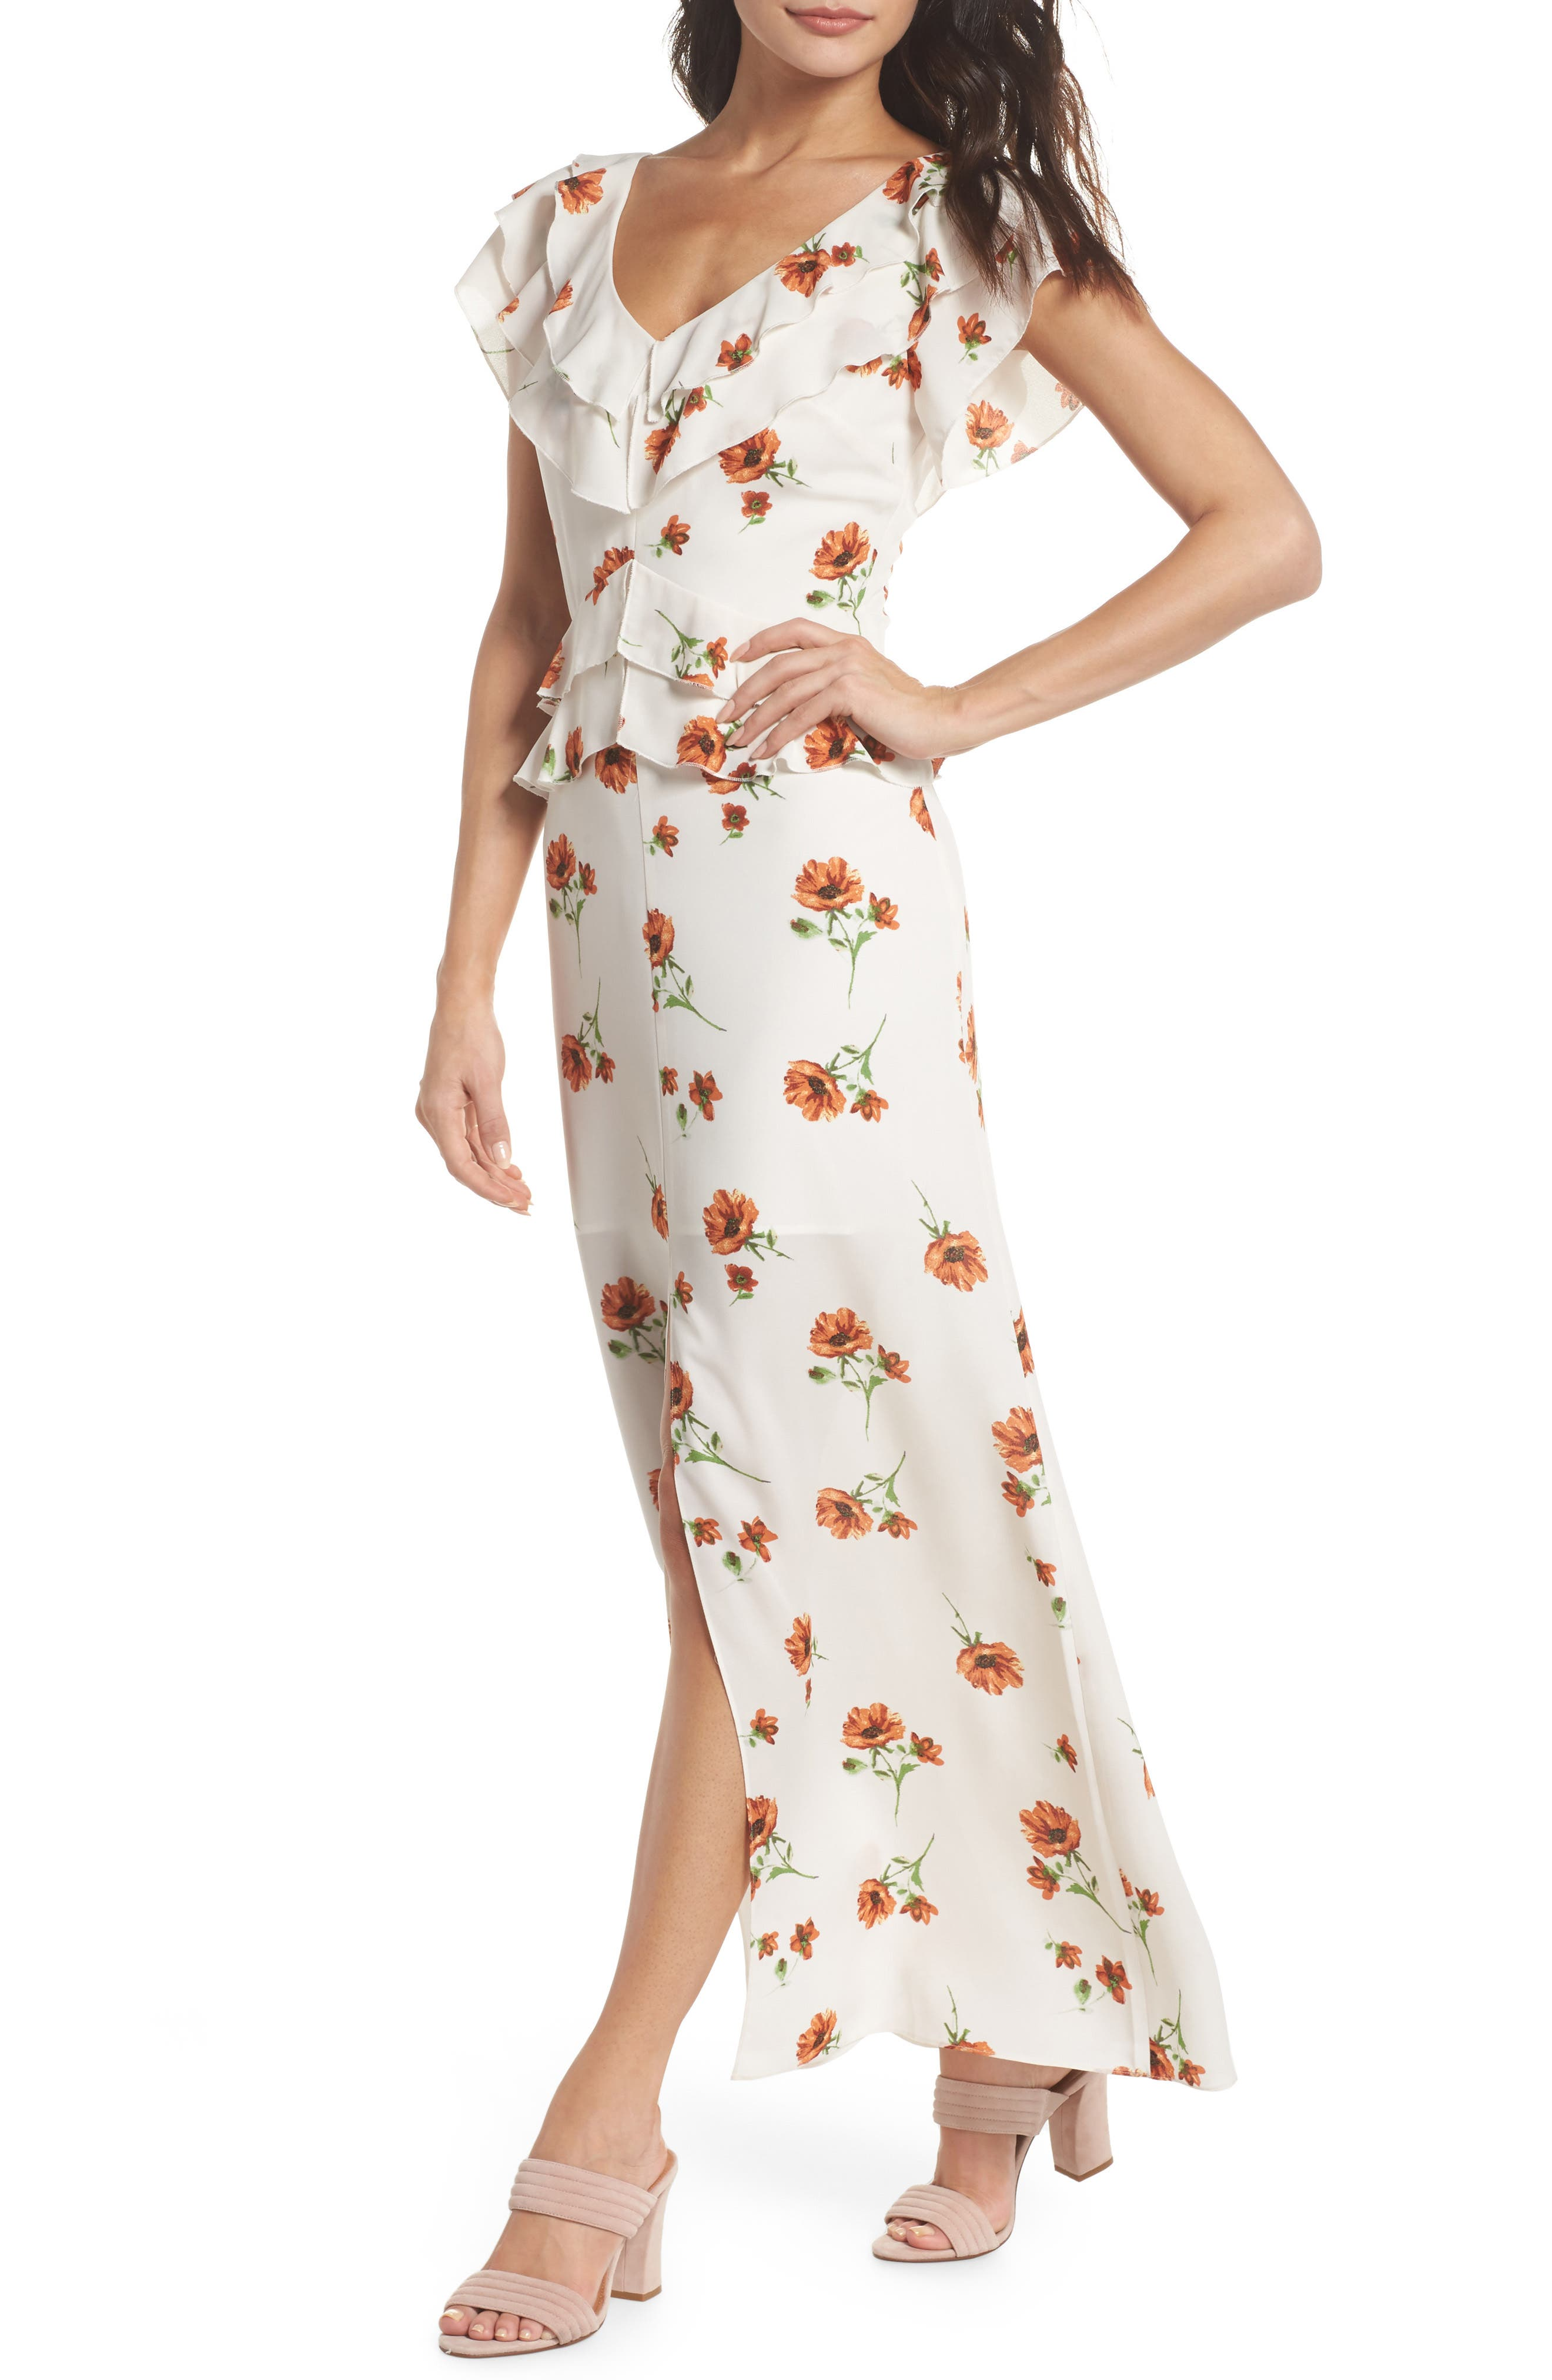 Main Image - Ali & Jay Darling Nikki Floral Maxi Dress